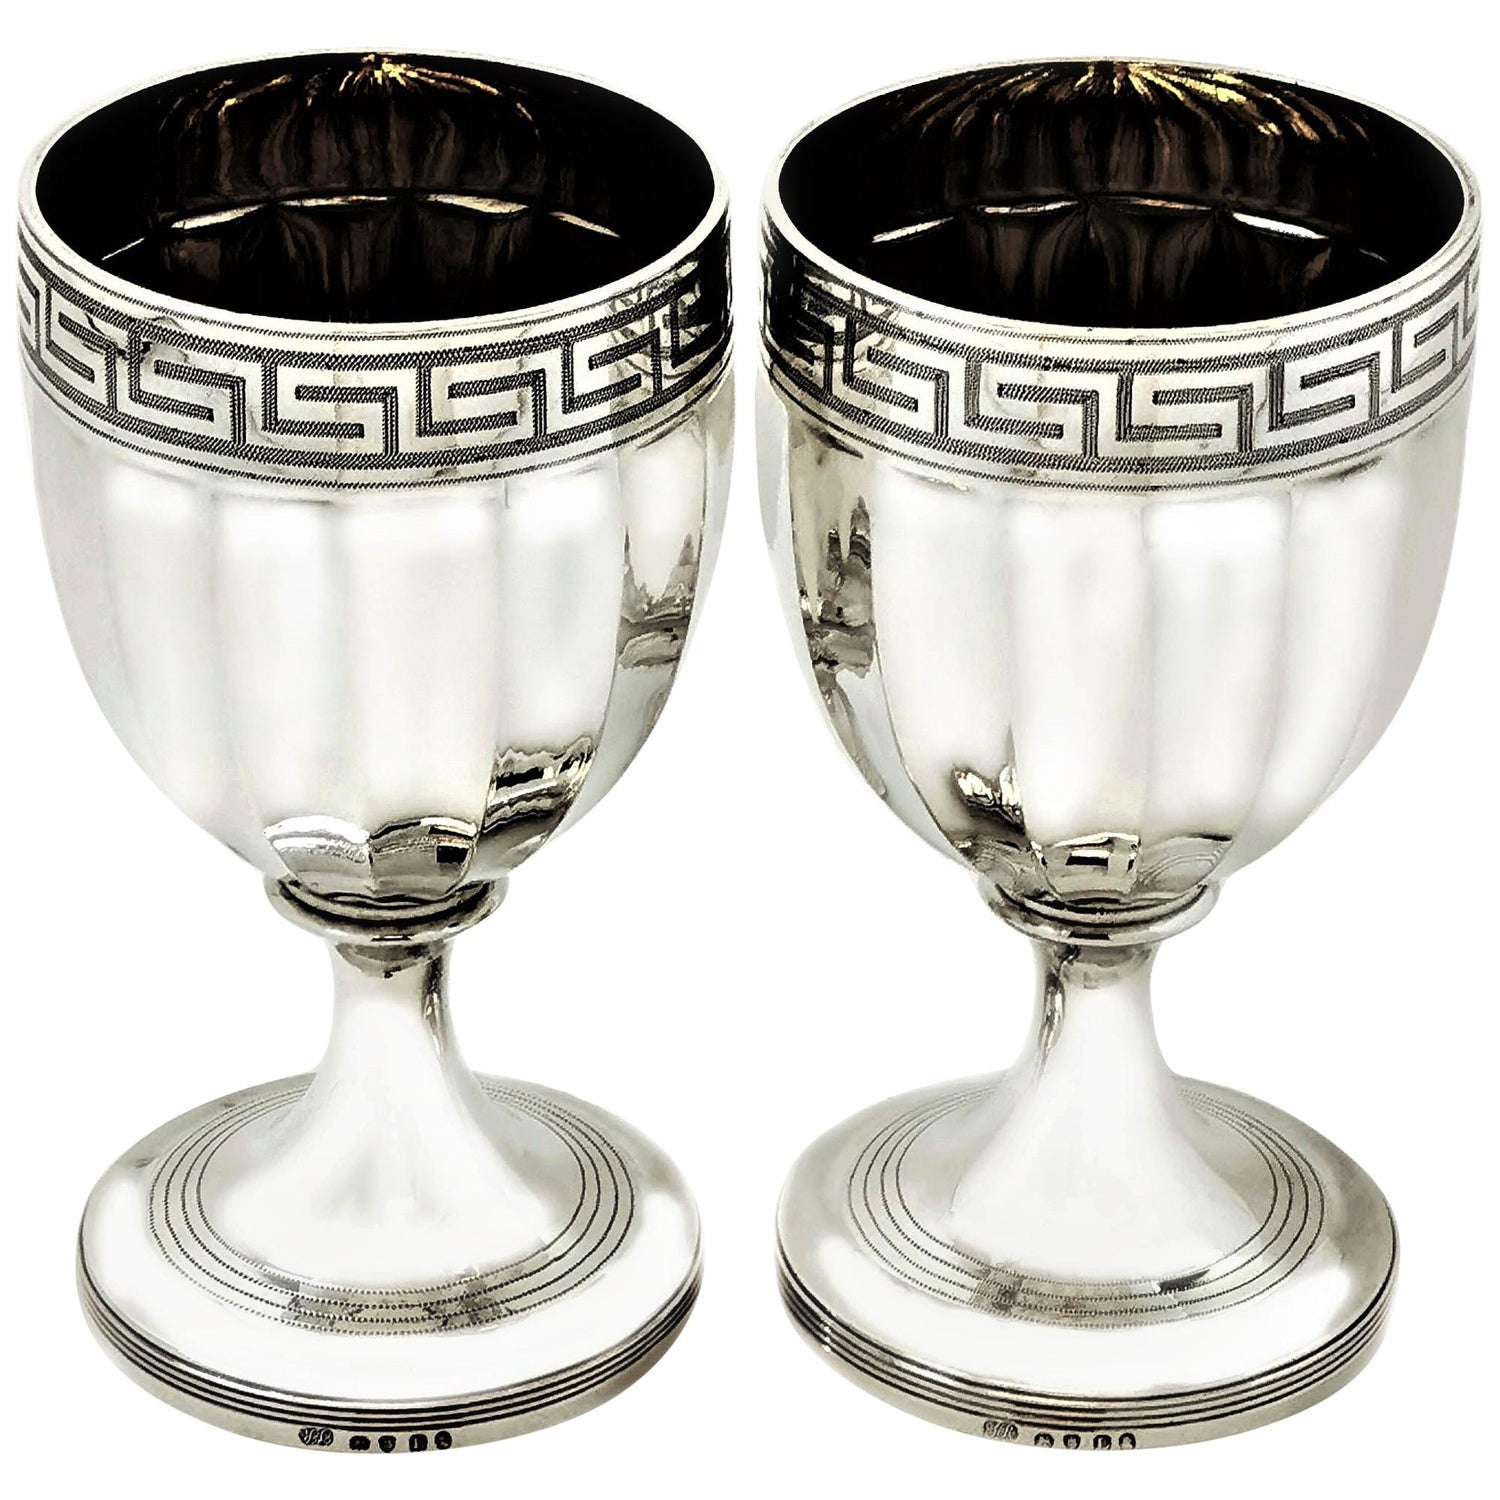 Pair of Antique George III Sterling Silver Wine Goblets, 1806